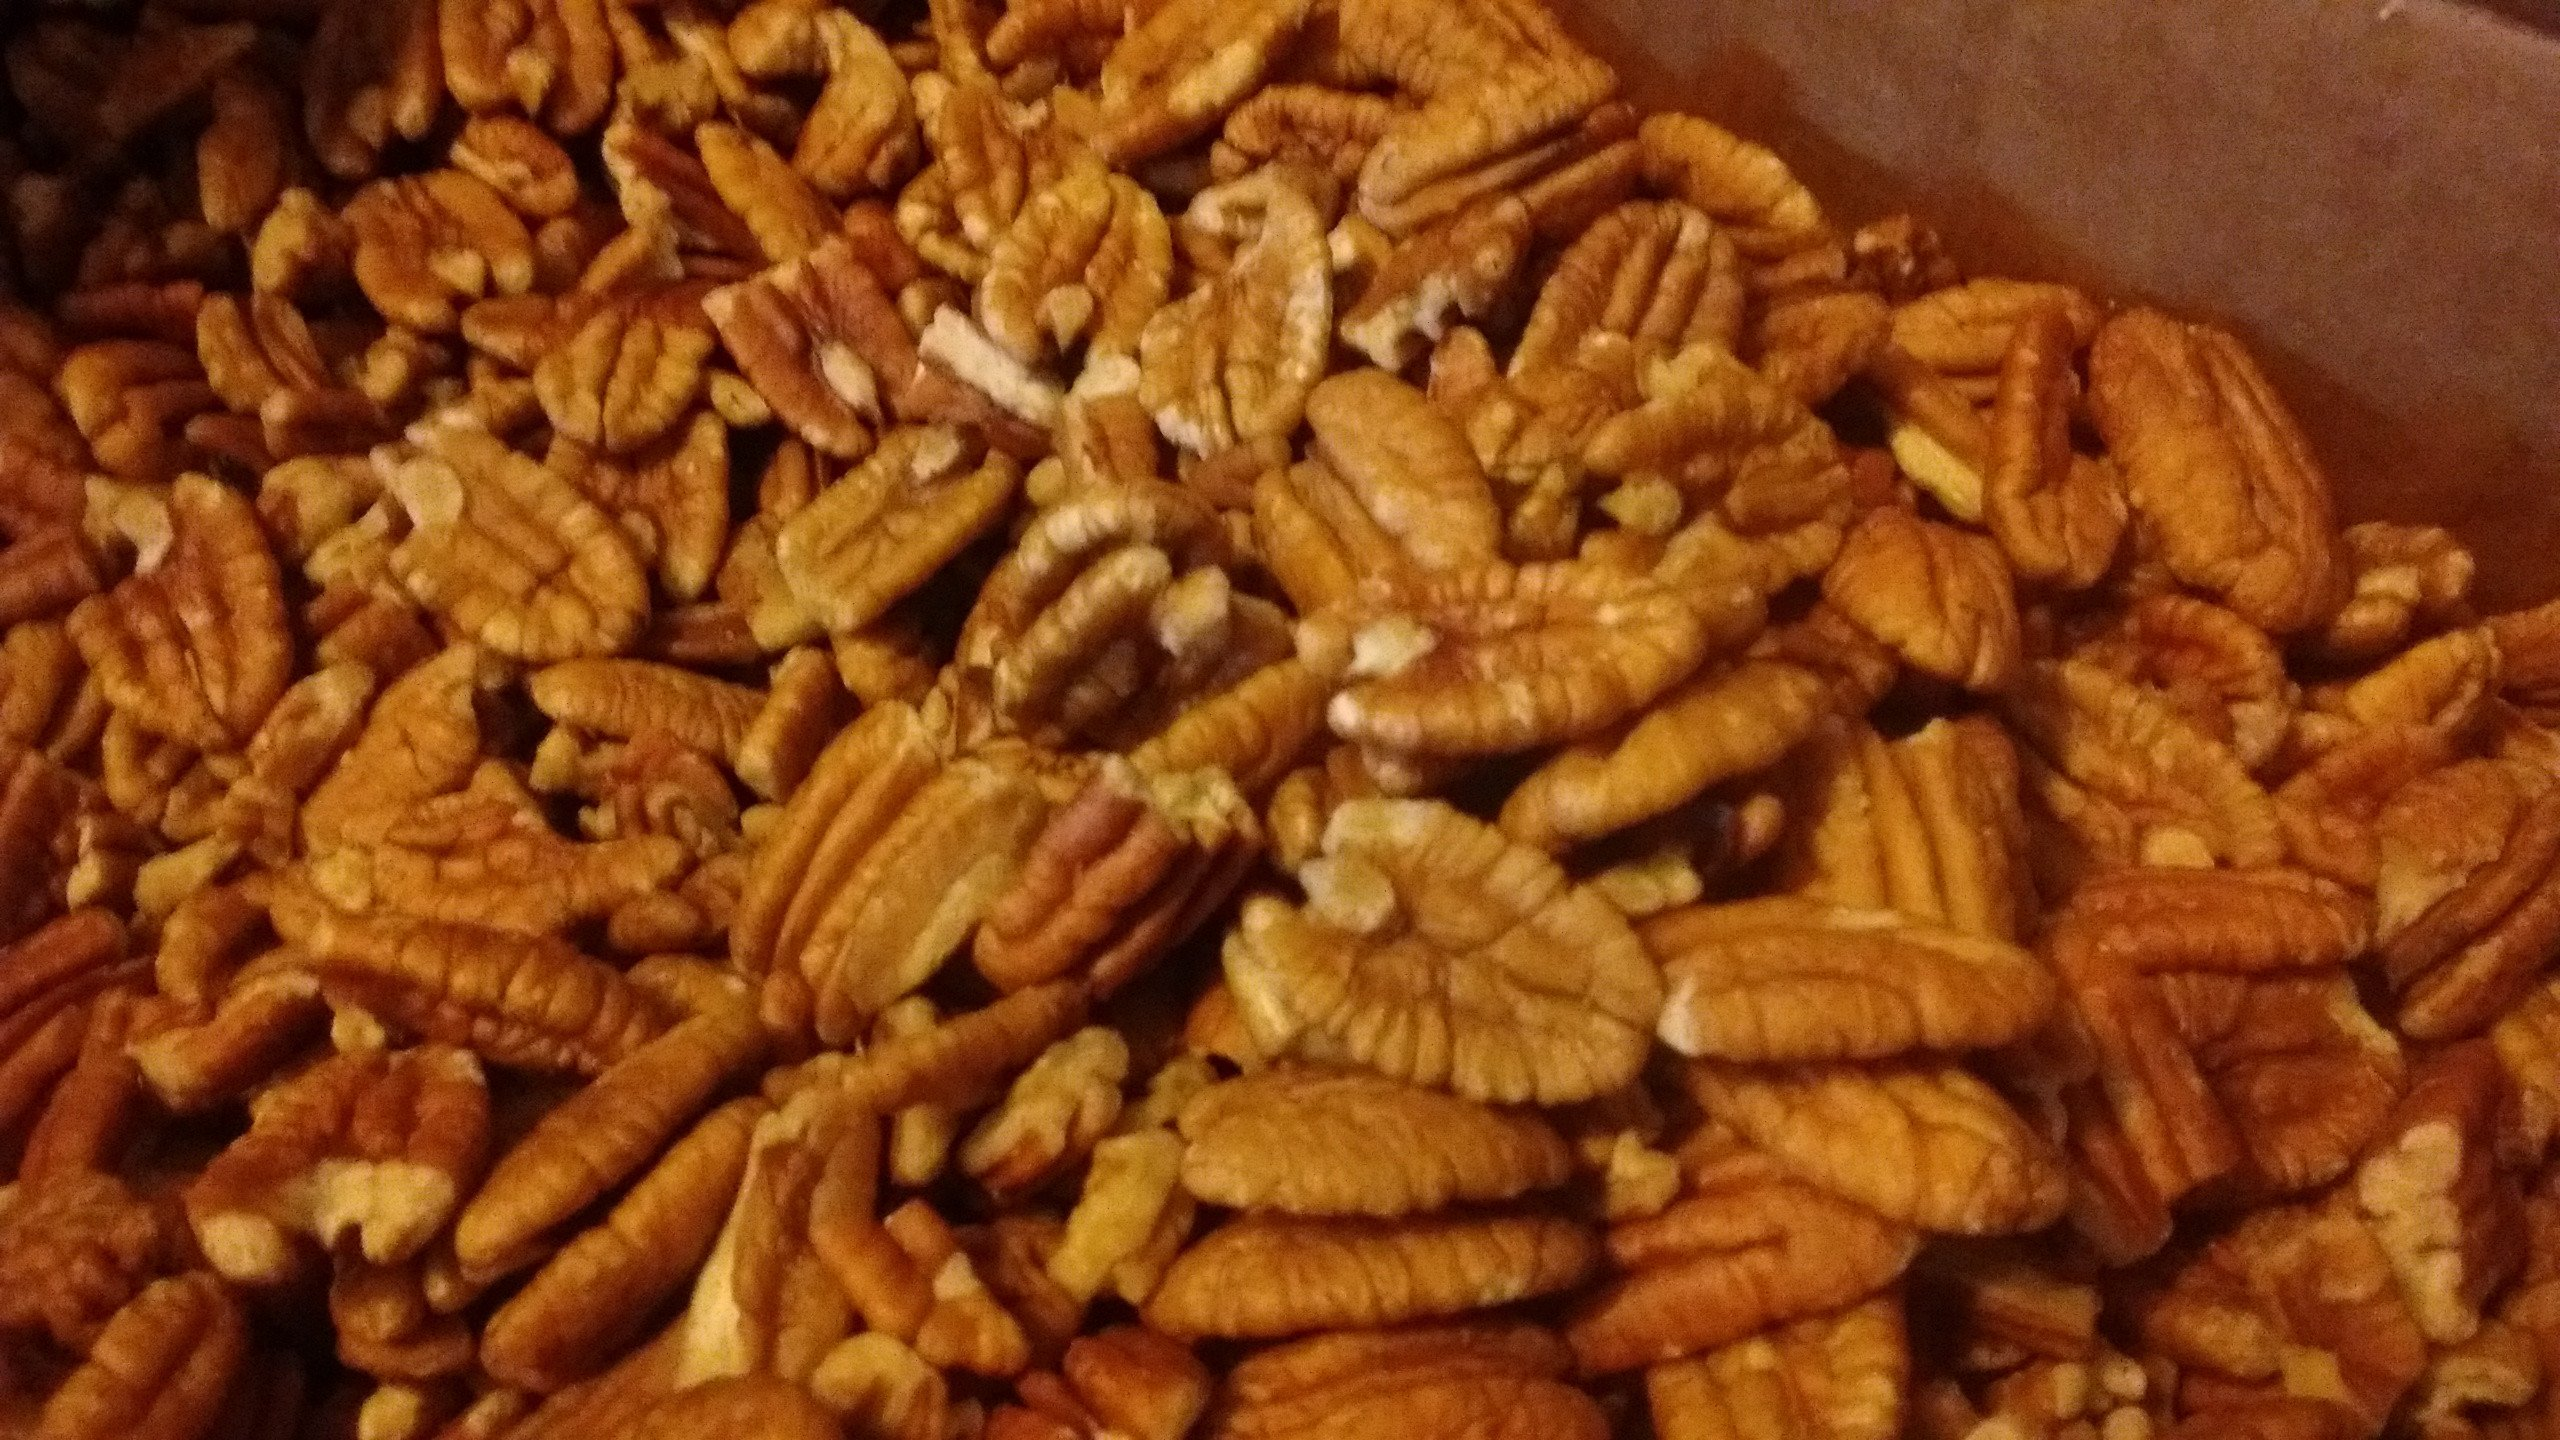 Organic Practice Raw Unpsrayed Fresh Shelled Texas Papershell Junior Mammoth Pecan Halves 2 lb by PecanShop.com